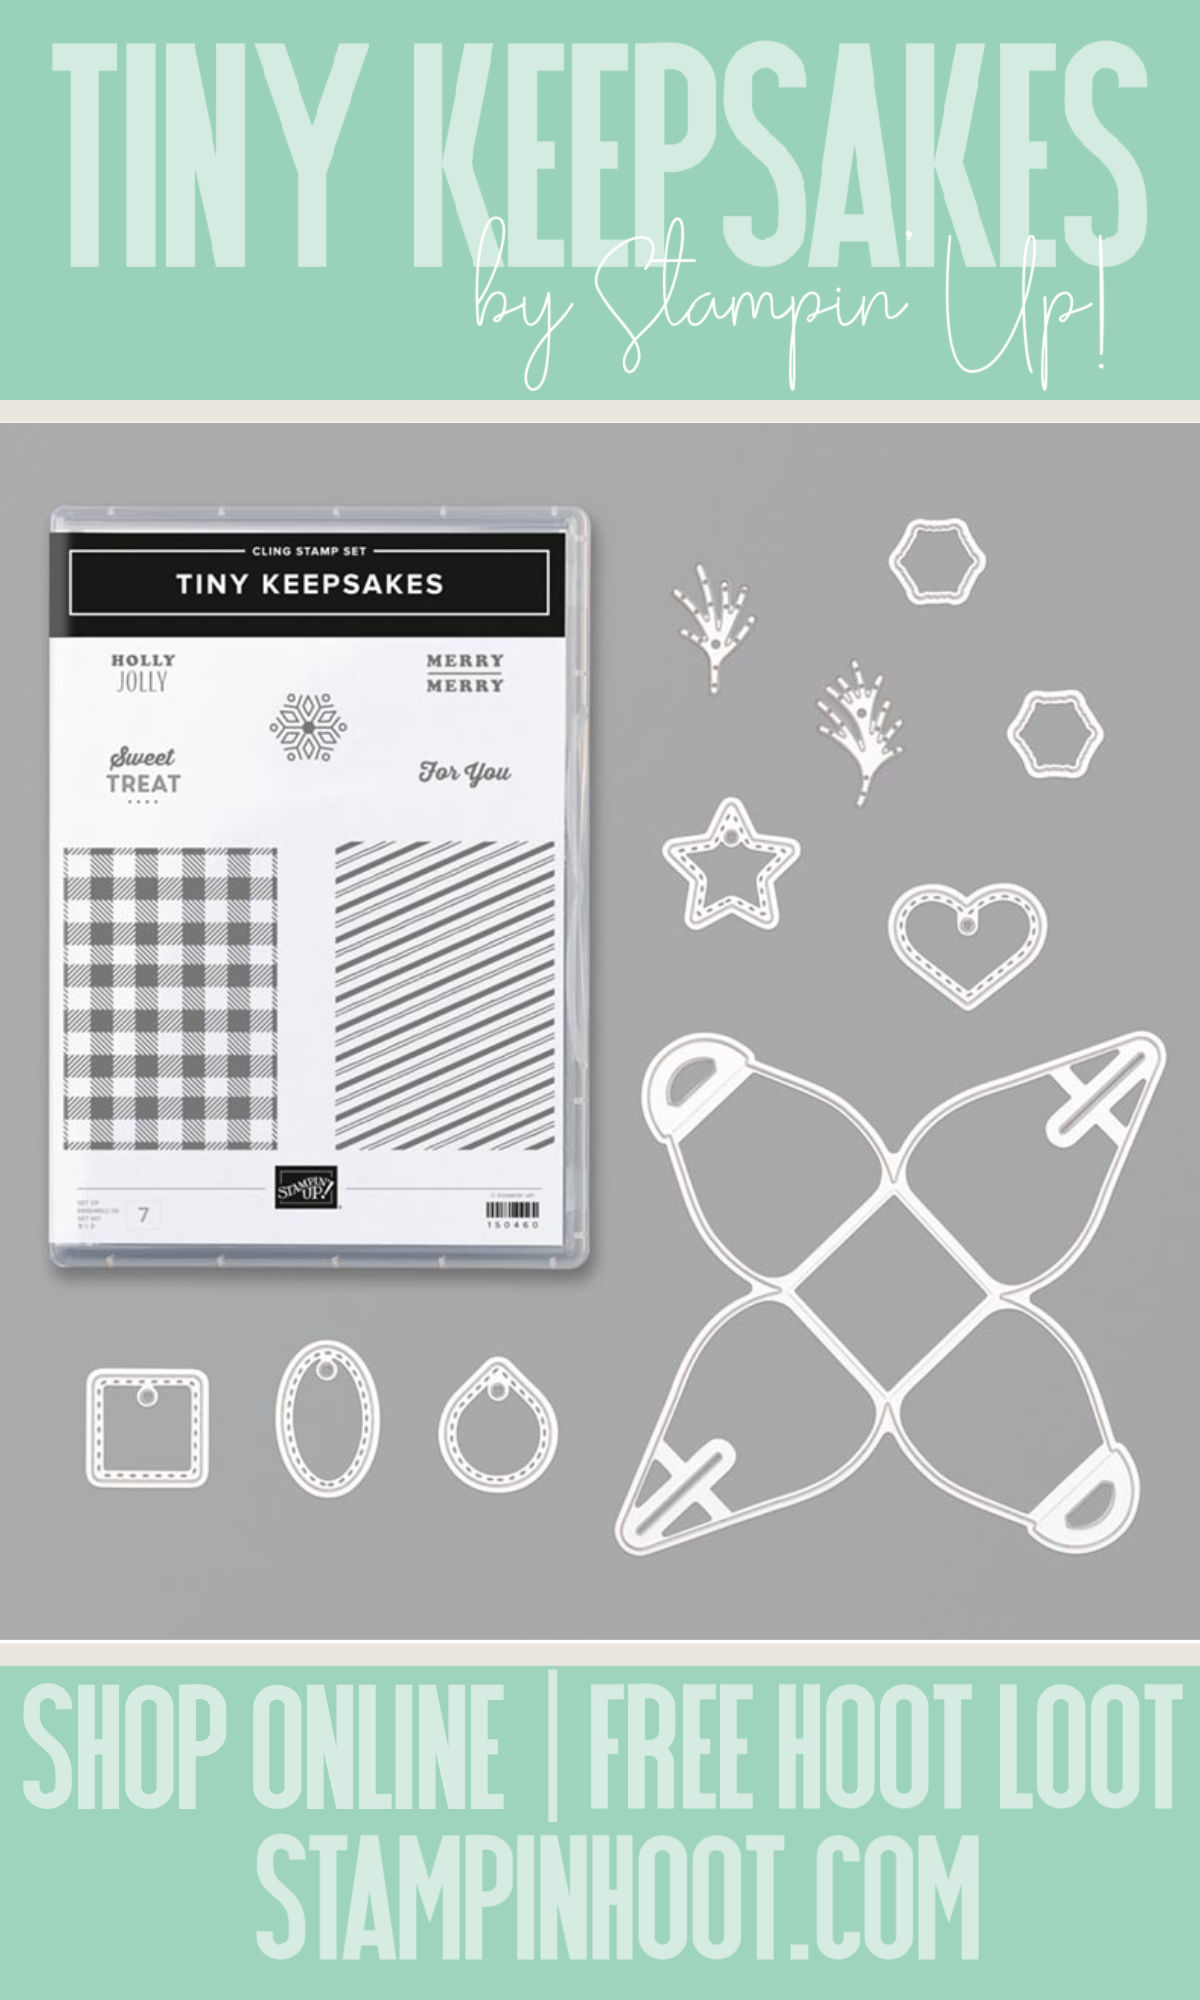 Stampin' Up! Tiny Keepsakes Bundle from the 2019 Holiday Catalog